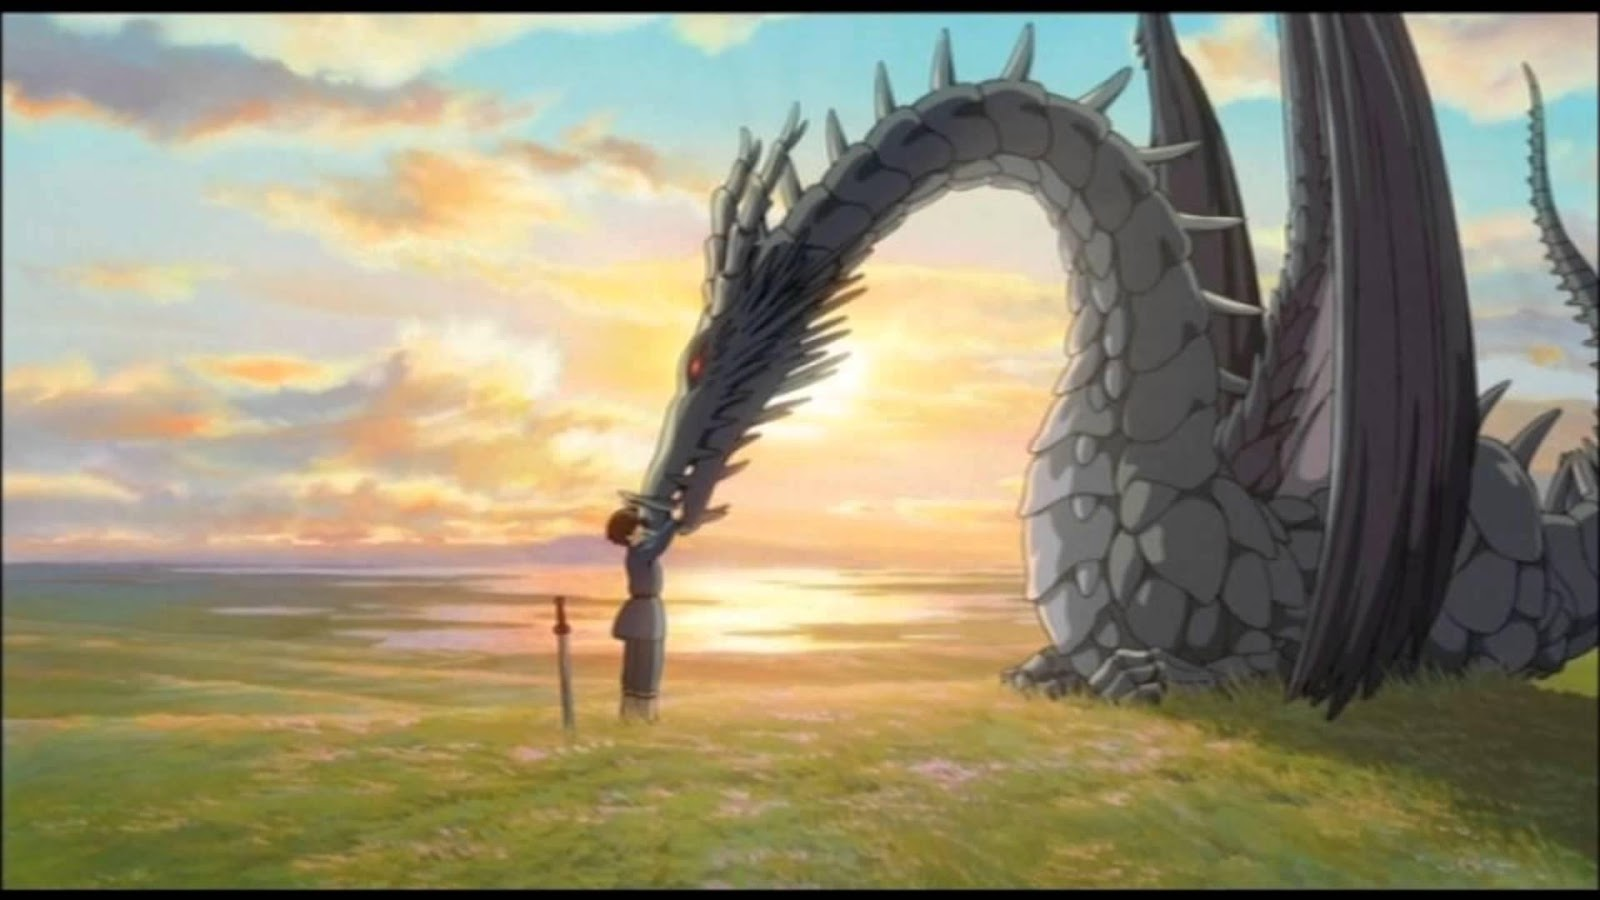 30 Years of Ghibli: The Tales from Earthsea – ENTROPY